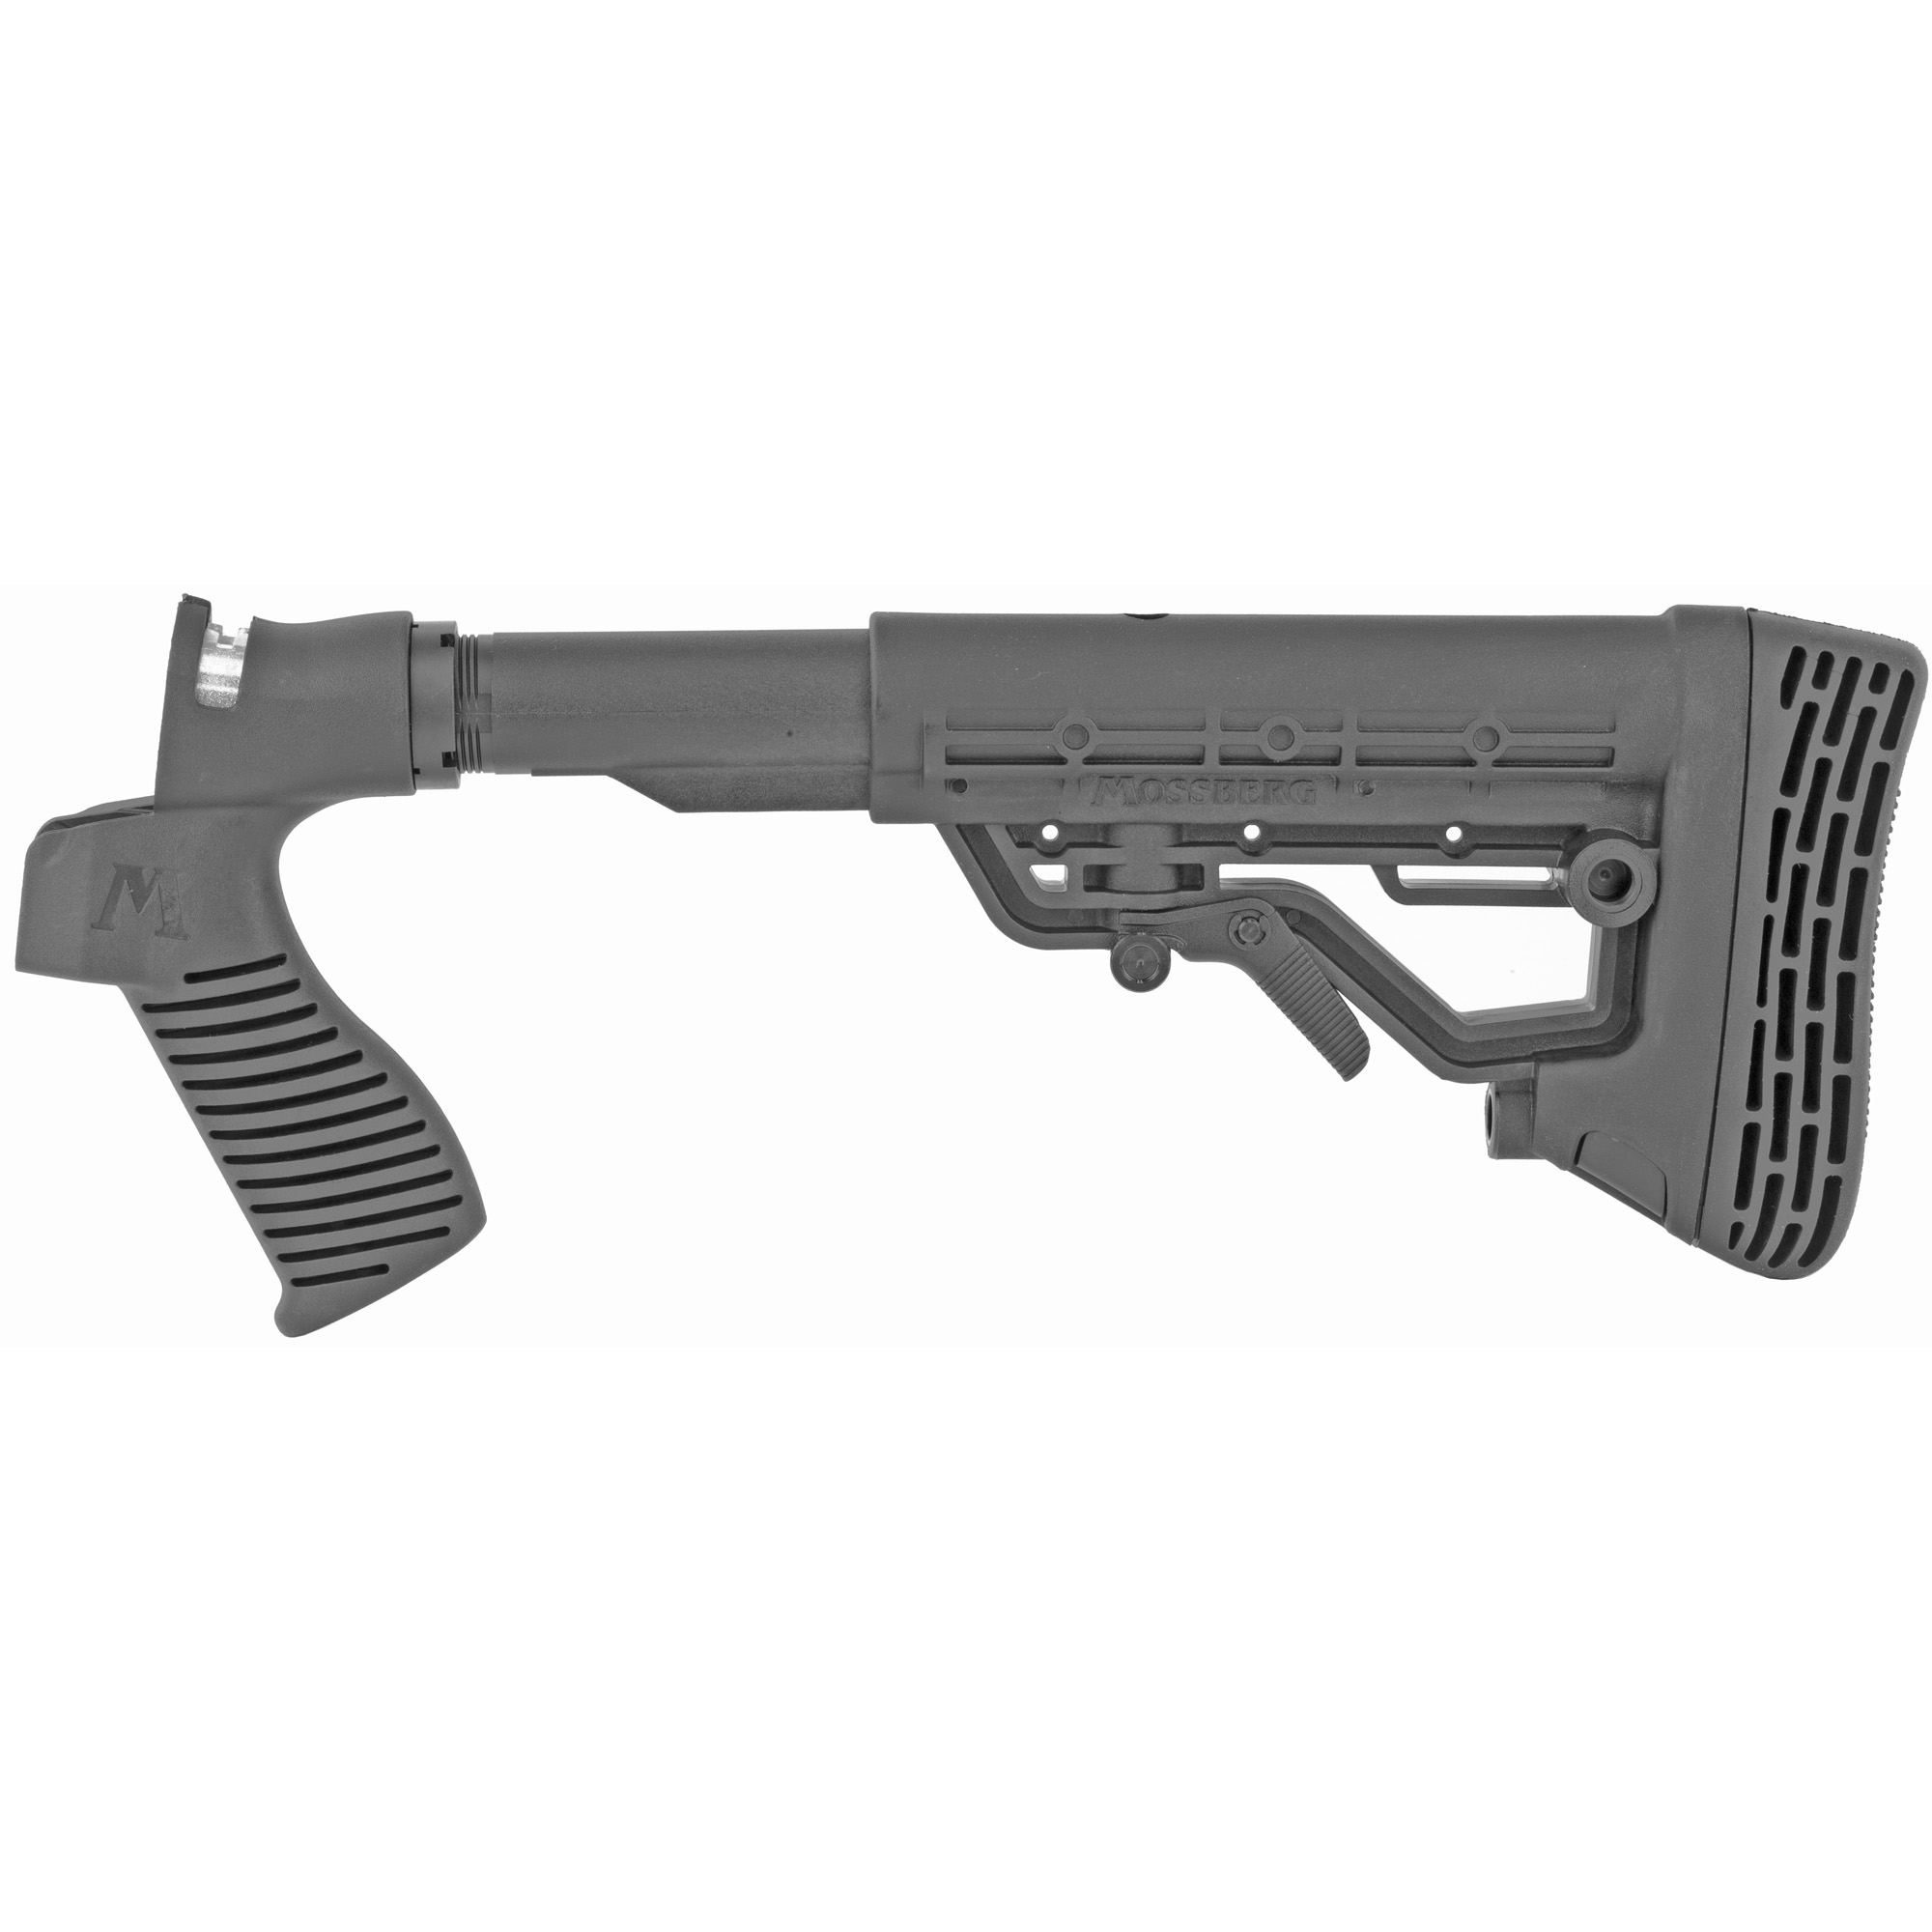 """This Mossberg FLEX 6-Position Tactical Stock is the optimal way to completely customize your FLEX 500 or 590 shotgun. It allows you to easily switch and lock in pumps"""" stocks"""" butt pads and grips without additional tools."""